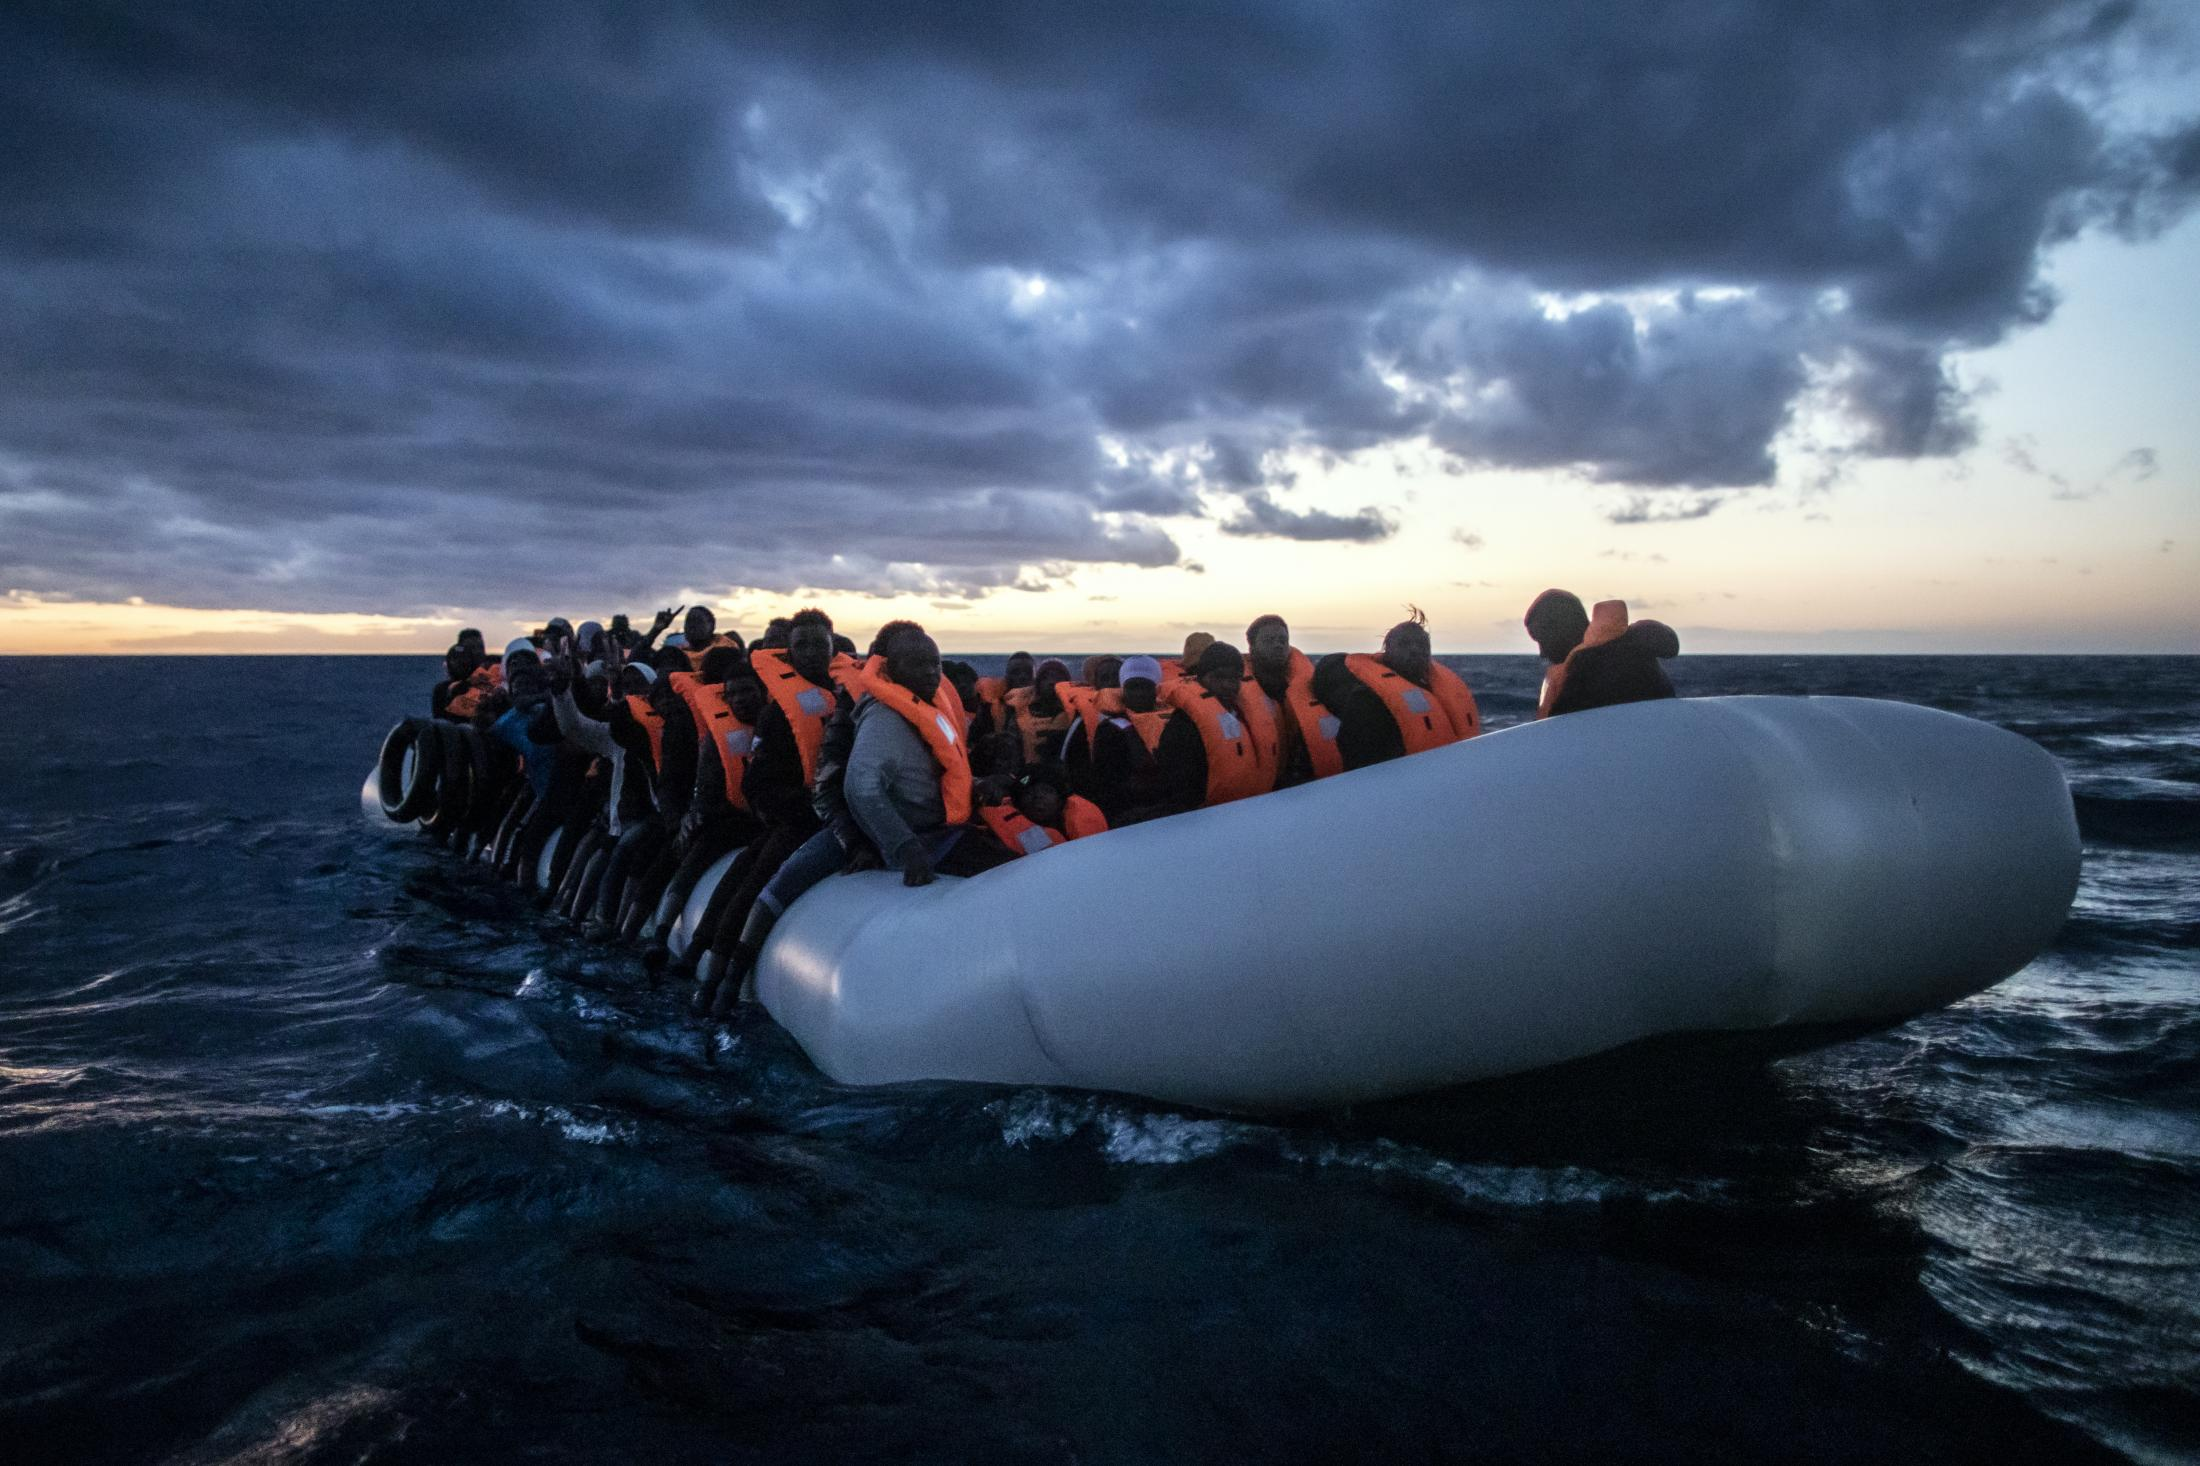 Migrants and refugees from different African nationalities wait for assistance aboard an overcrowded rubber boat, as aid workers of the Spanish NGO Open Arms approach them in the Mediterranean Sea, international waters, at 80 miles off the Libyan coast, Saturday Feb. 13, 2021.